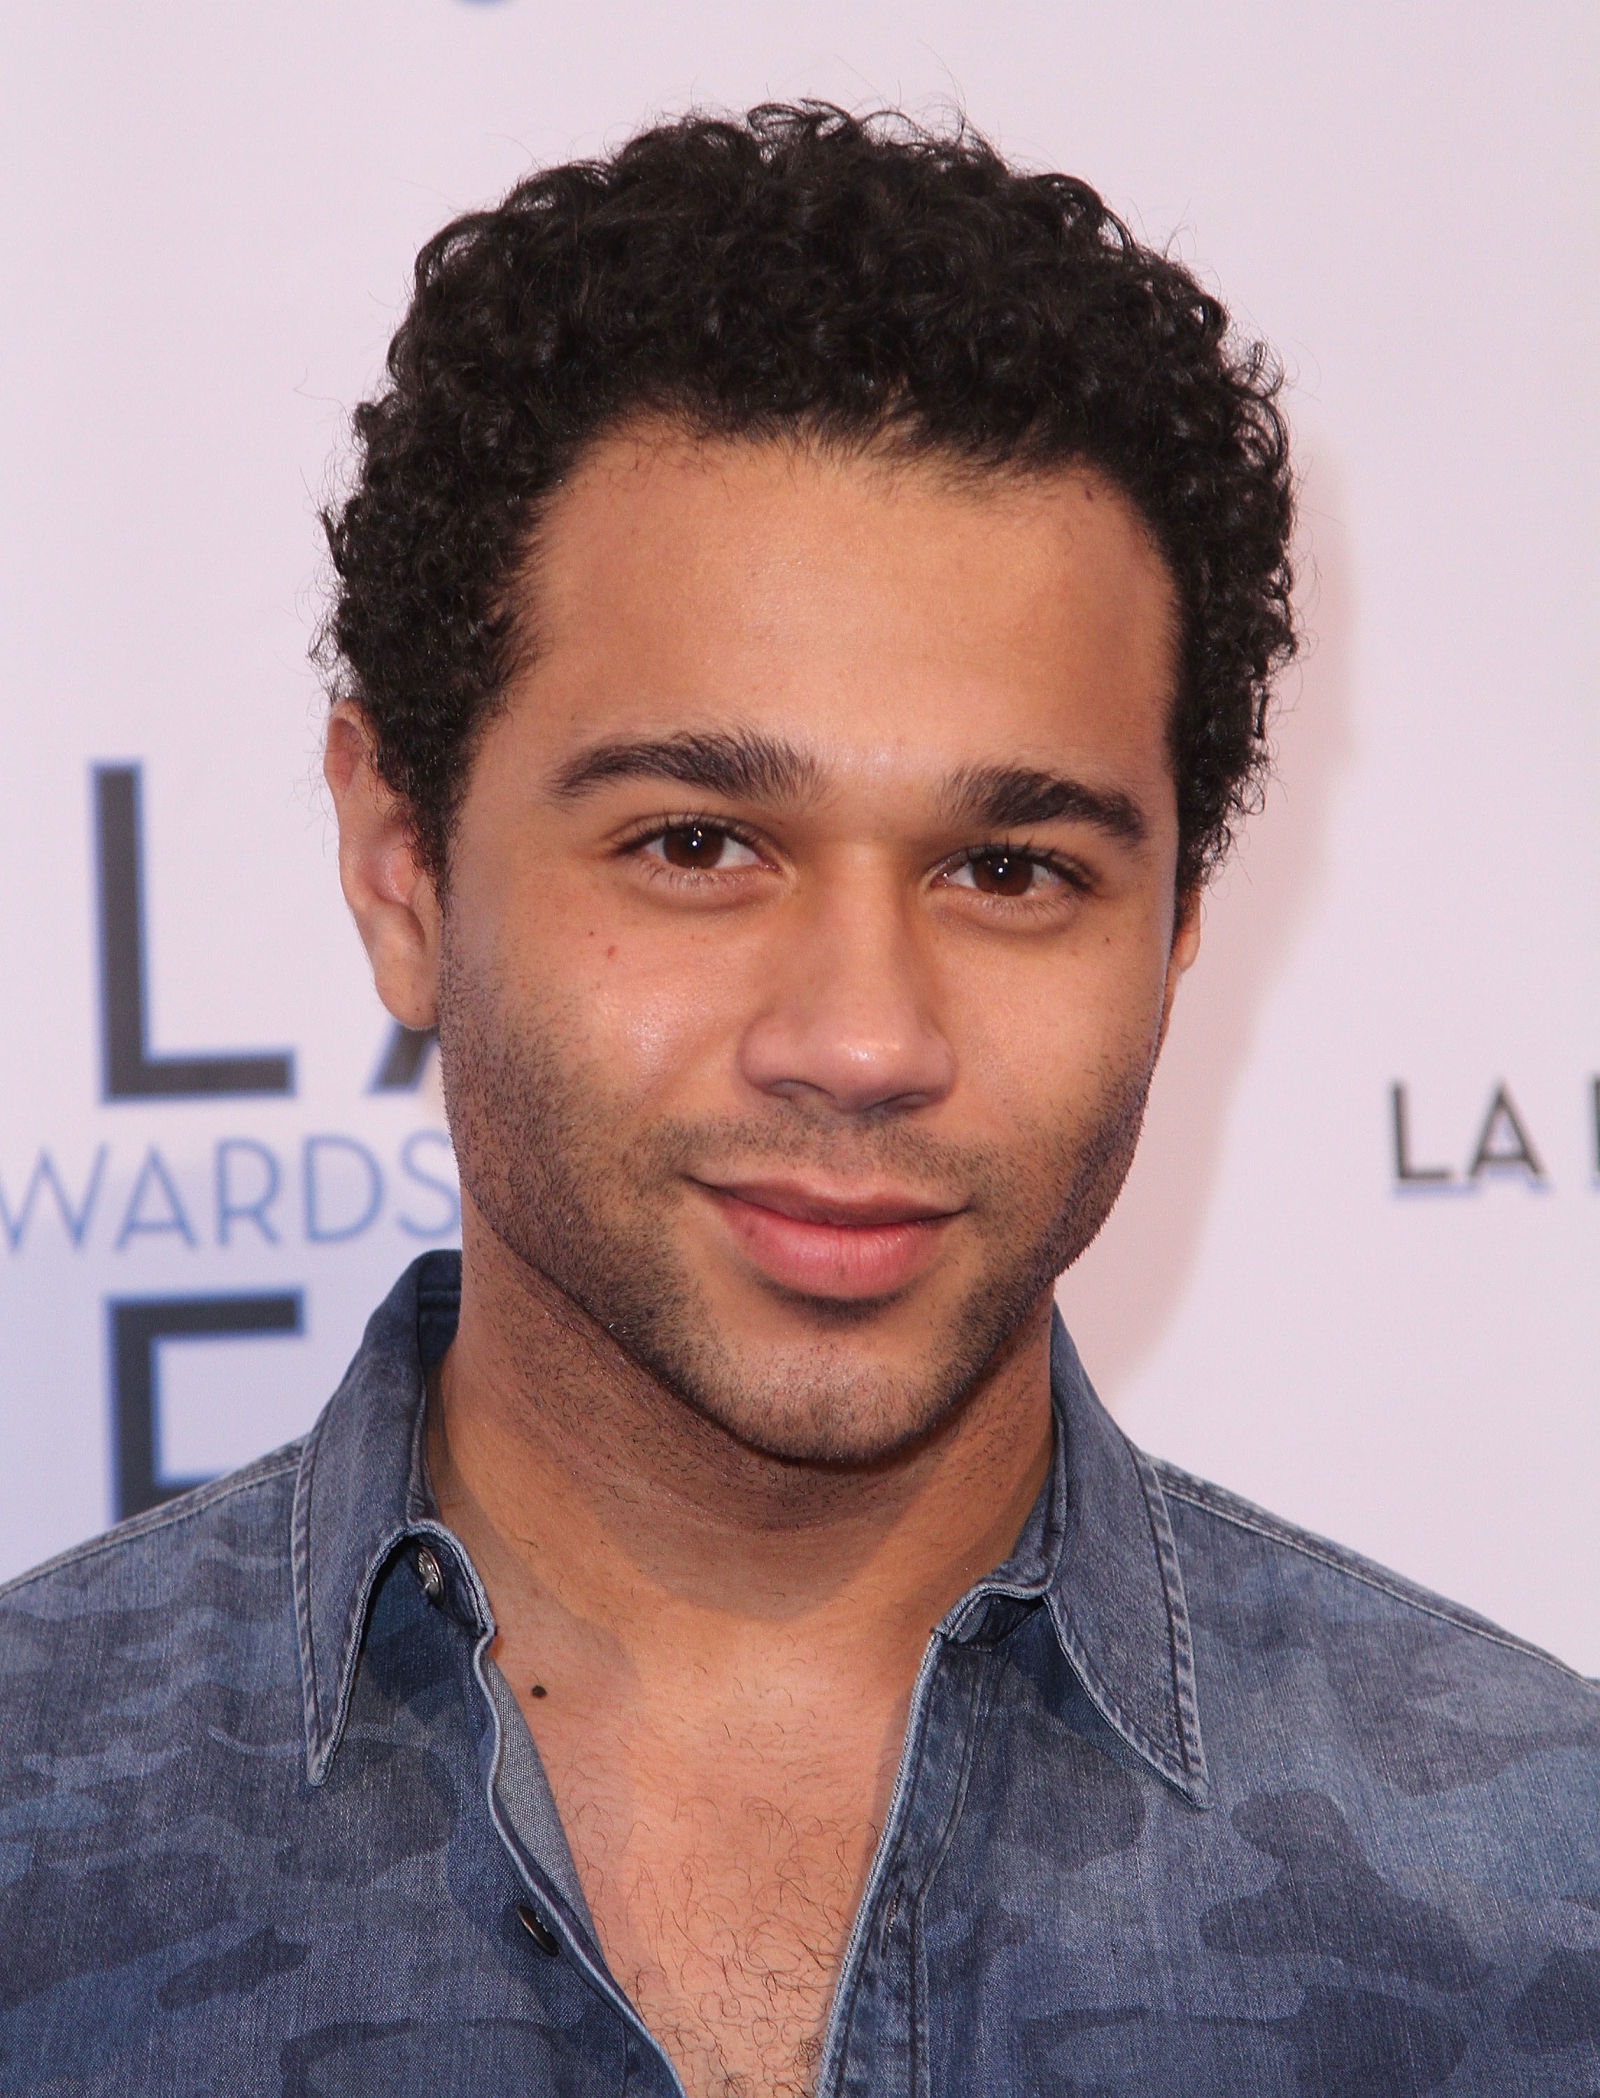 High School Musical's Corbin Bleu is seriously hot these days